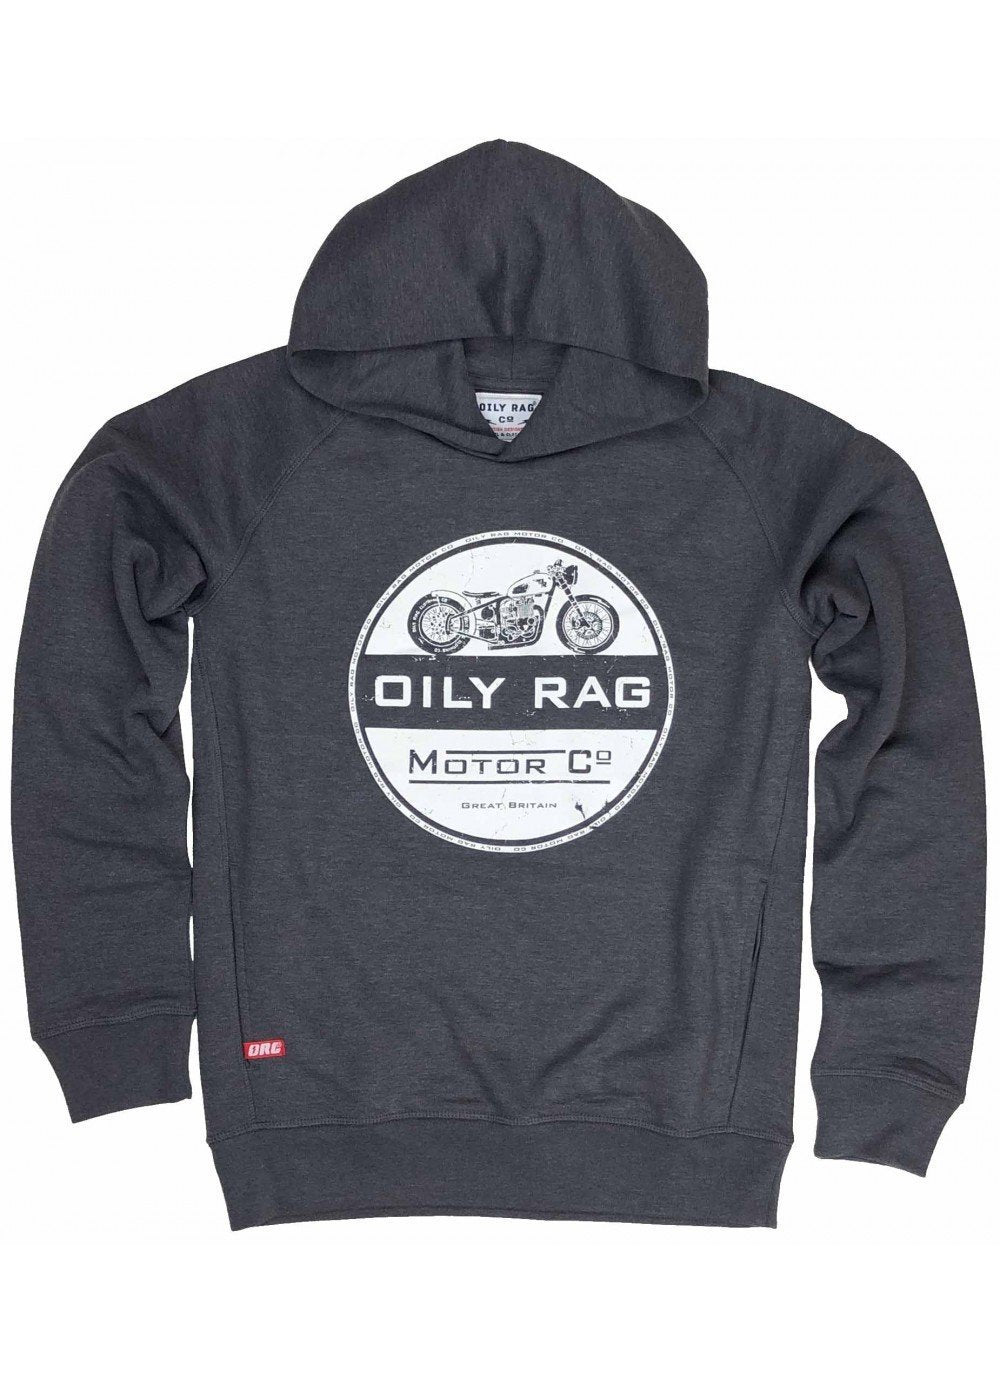 Oily Rag Clothing - Oily Rag Clothing Unisex Motor Co Black Label Hoodie - Hoodies | Sweatshirts | Wind Stopper - Salt Flats Clothing